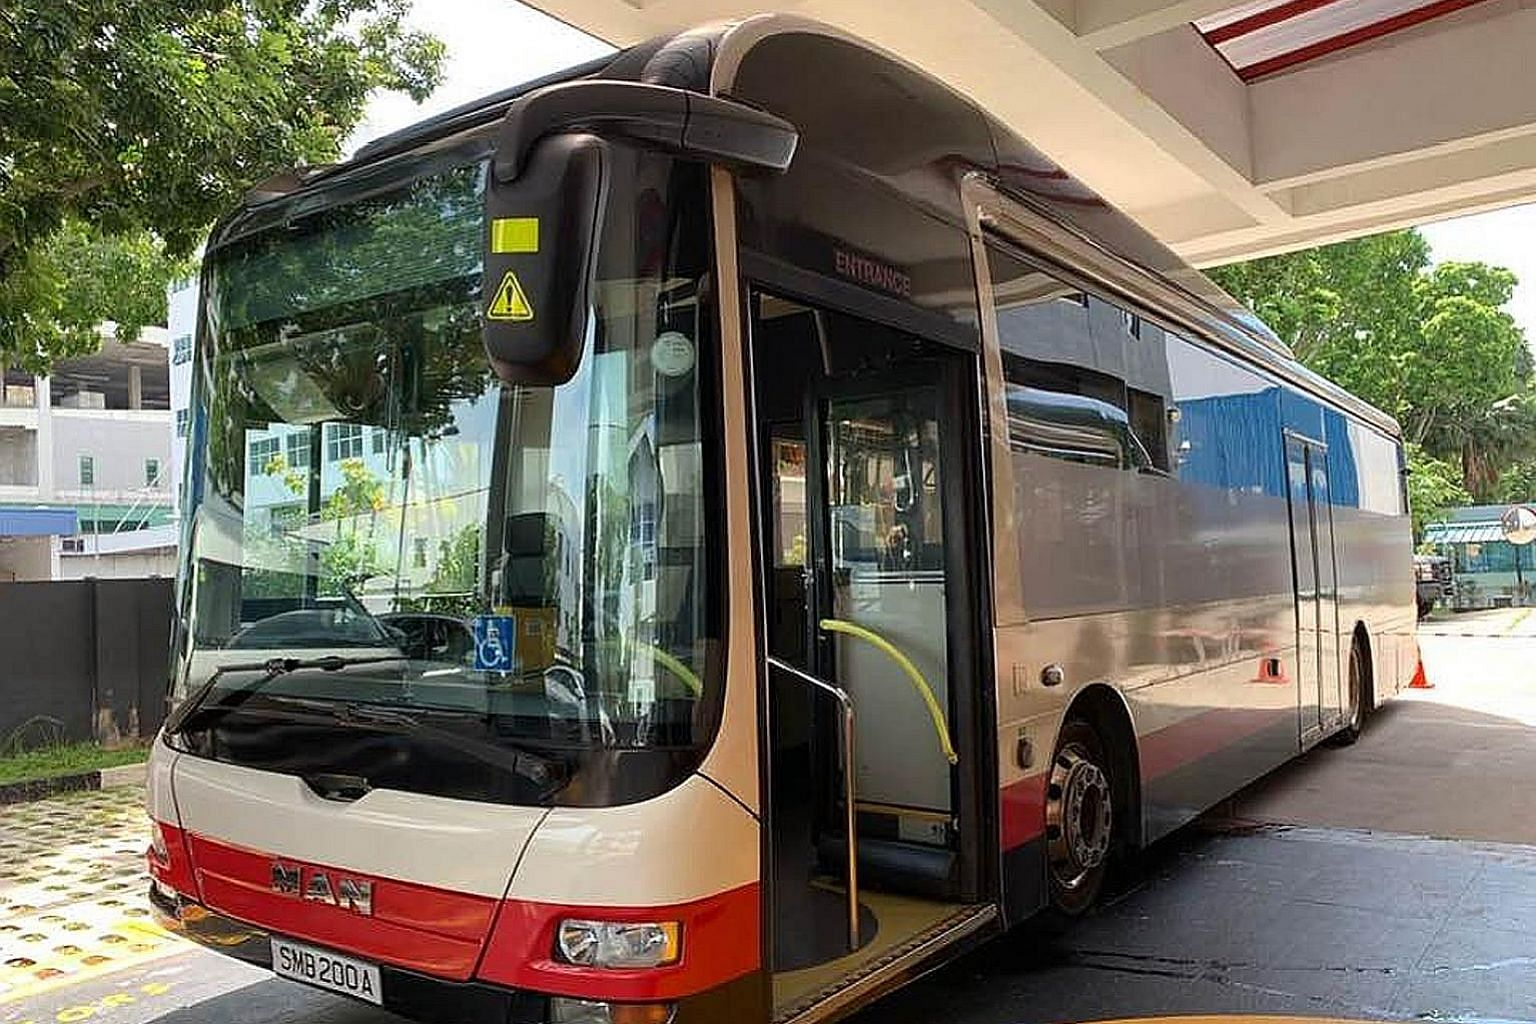 Twenty buses have been retrofitted so that Covid-19 patients can be transported safely between dormitories and hospitals or community care facilities. The driver and passengers are in separate compartments with their own air-conditioning systems, in